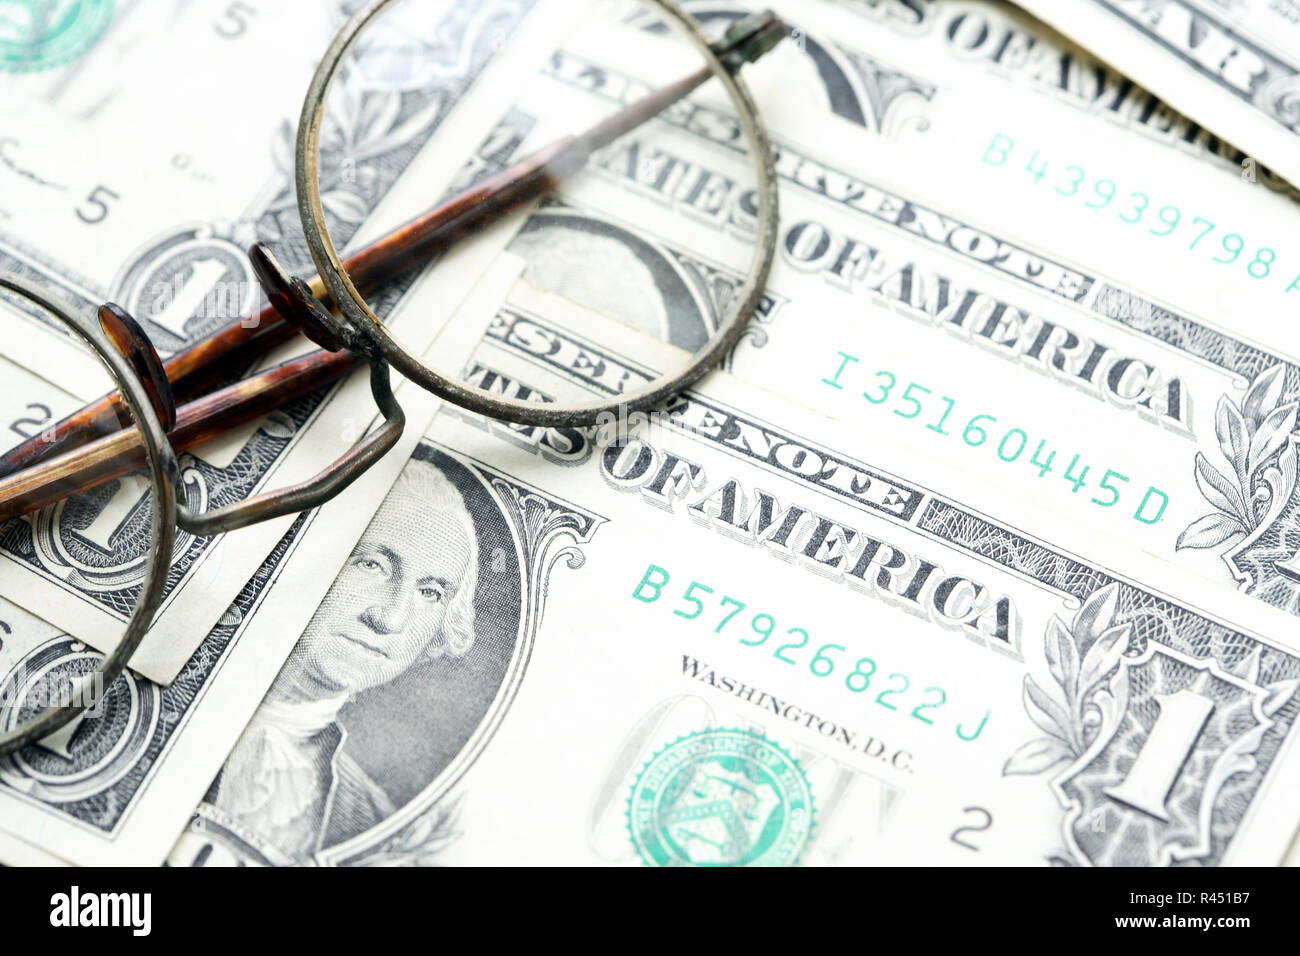 Retro bookkeeping concept. Old spectacles on dollar cash background